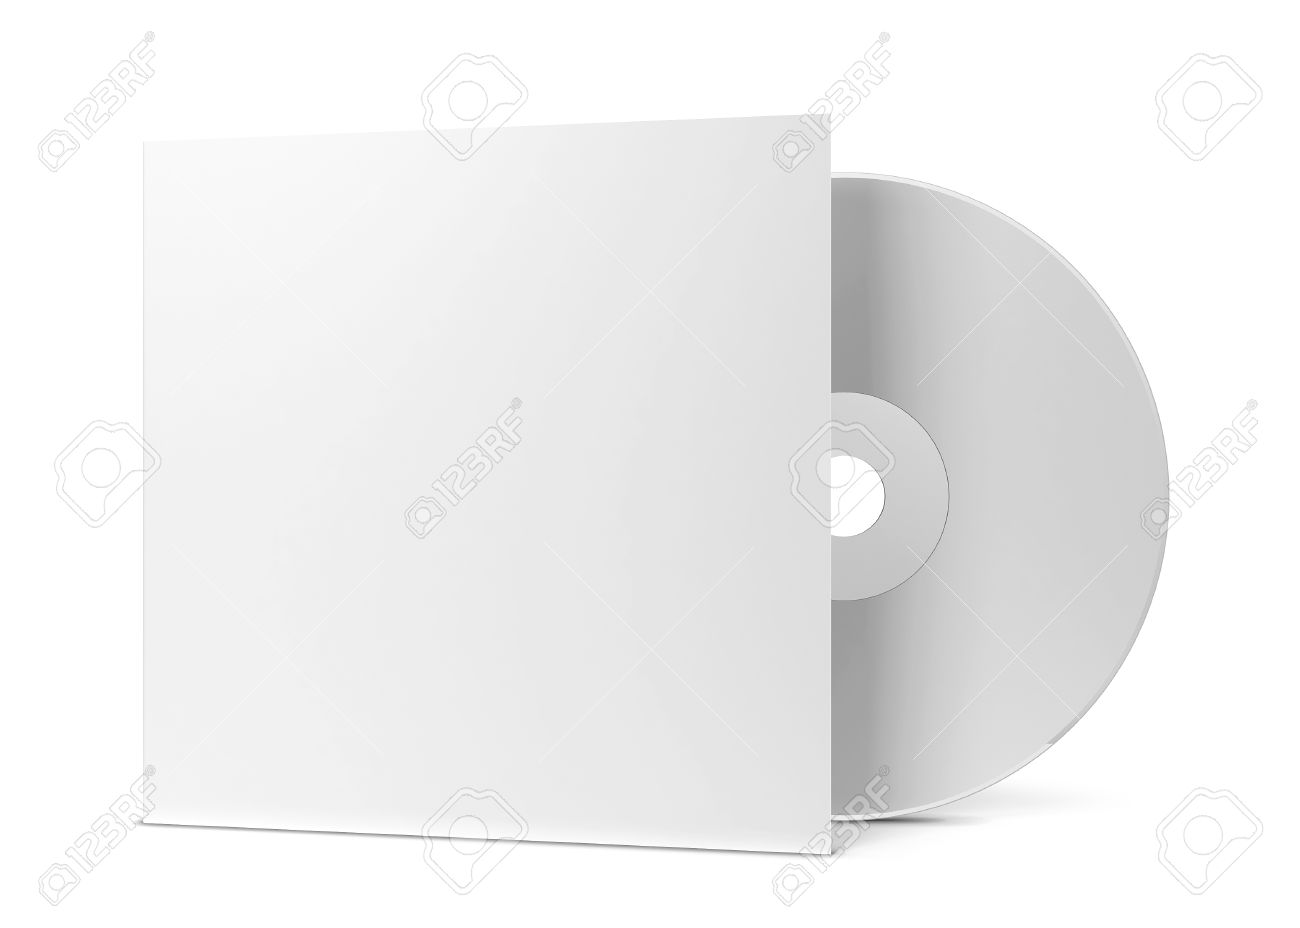 Blank Cd Cover. 3d Illustration Isolated On White Background Stock ...